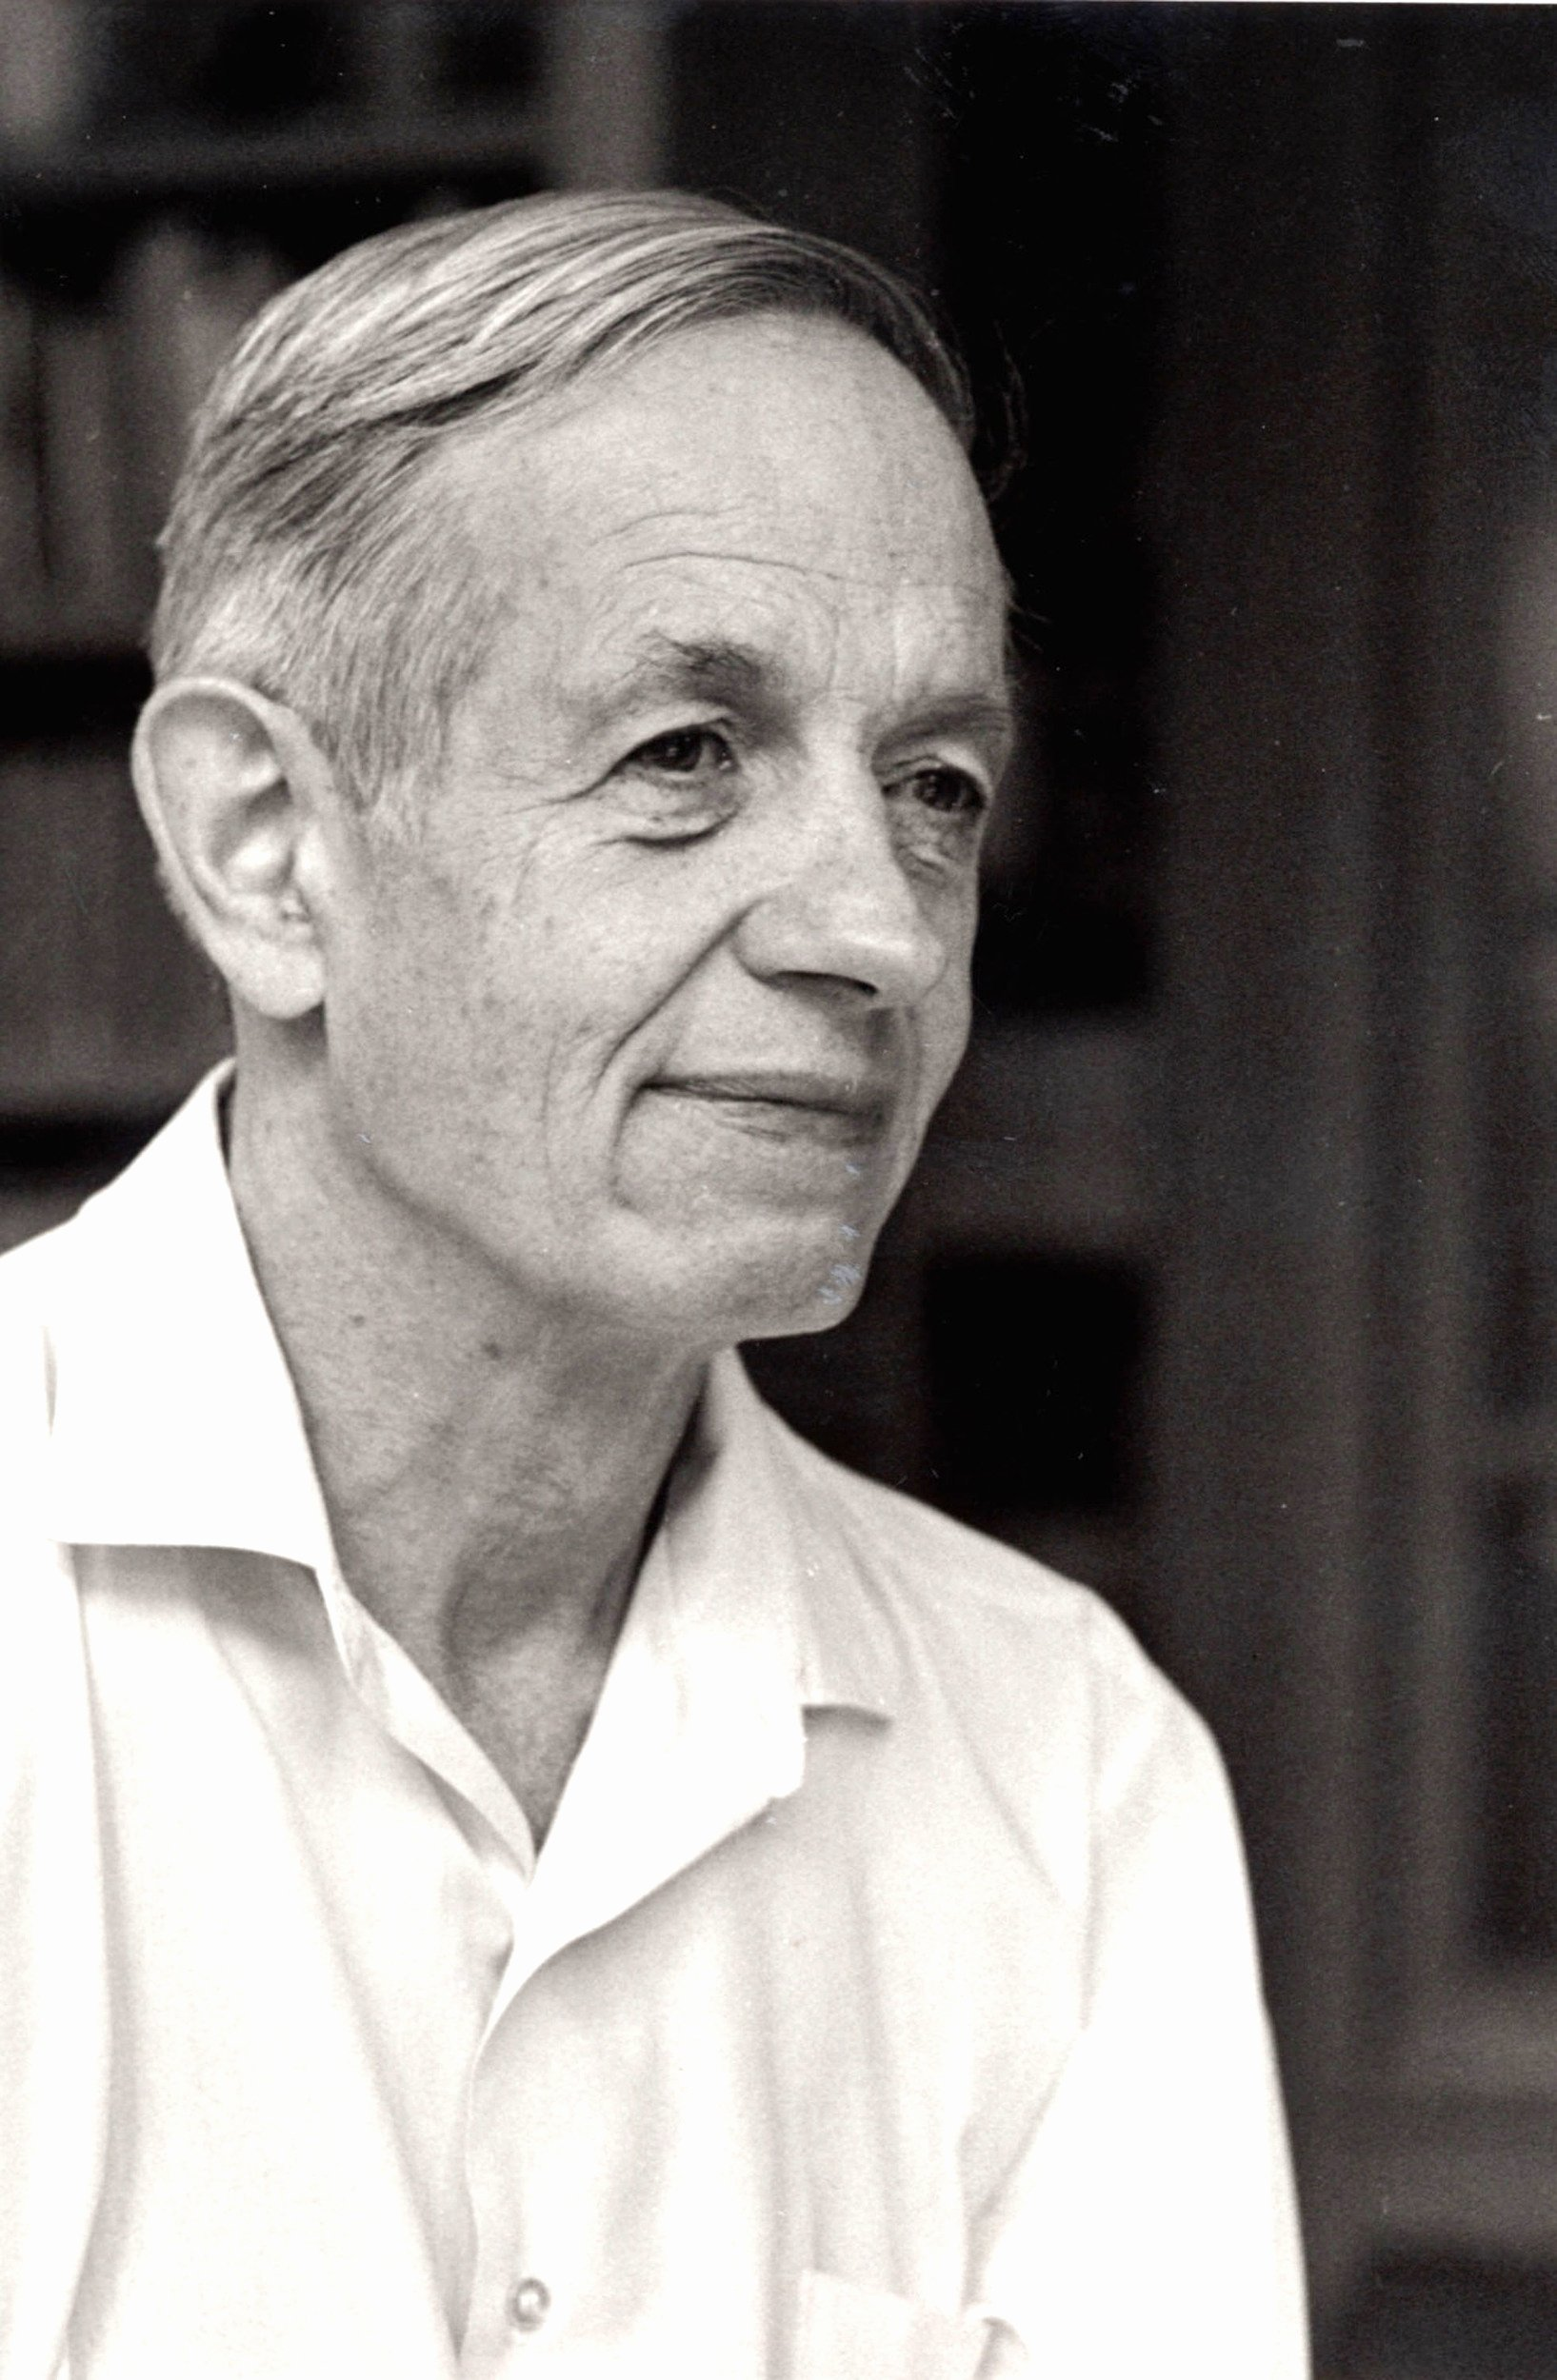 John Nash Recommendation Letter Fresh Re Mendation Letter for John Nash is the Best We Ve Ever